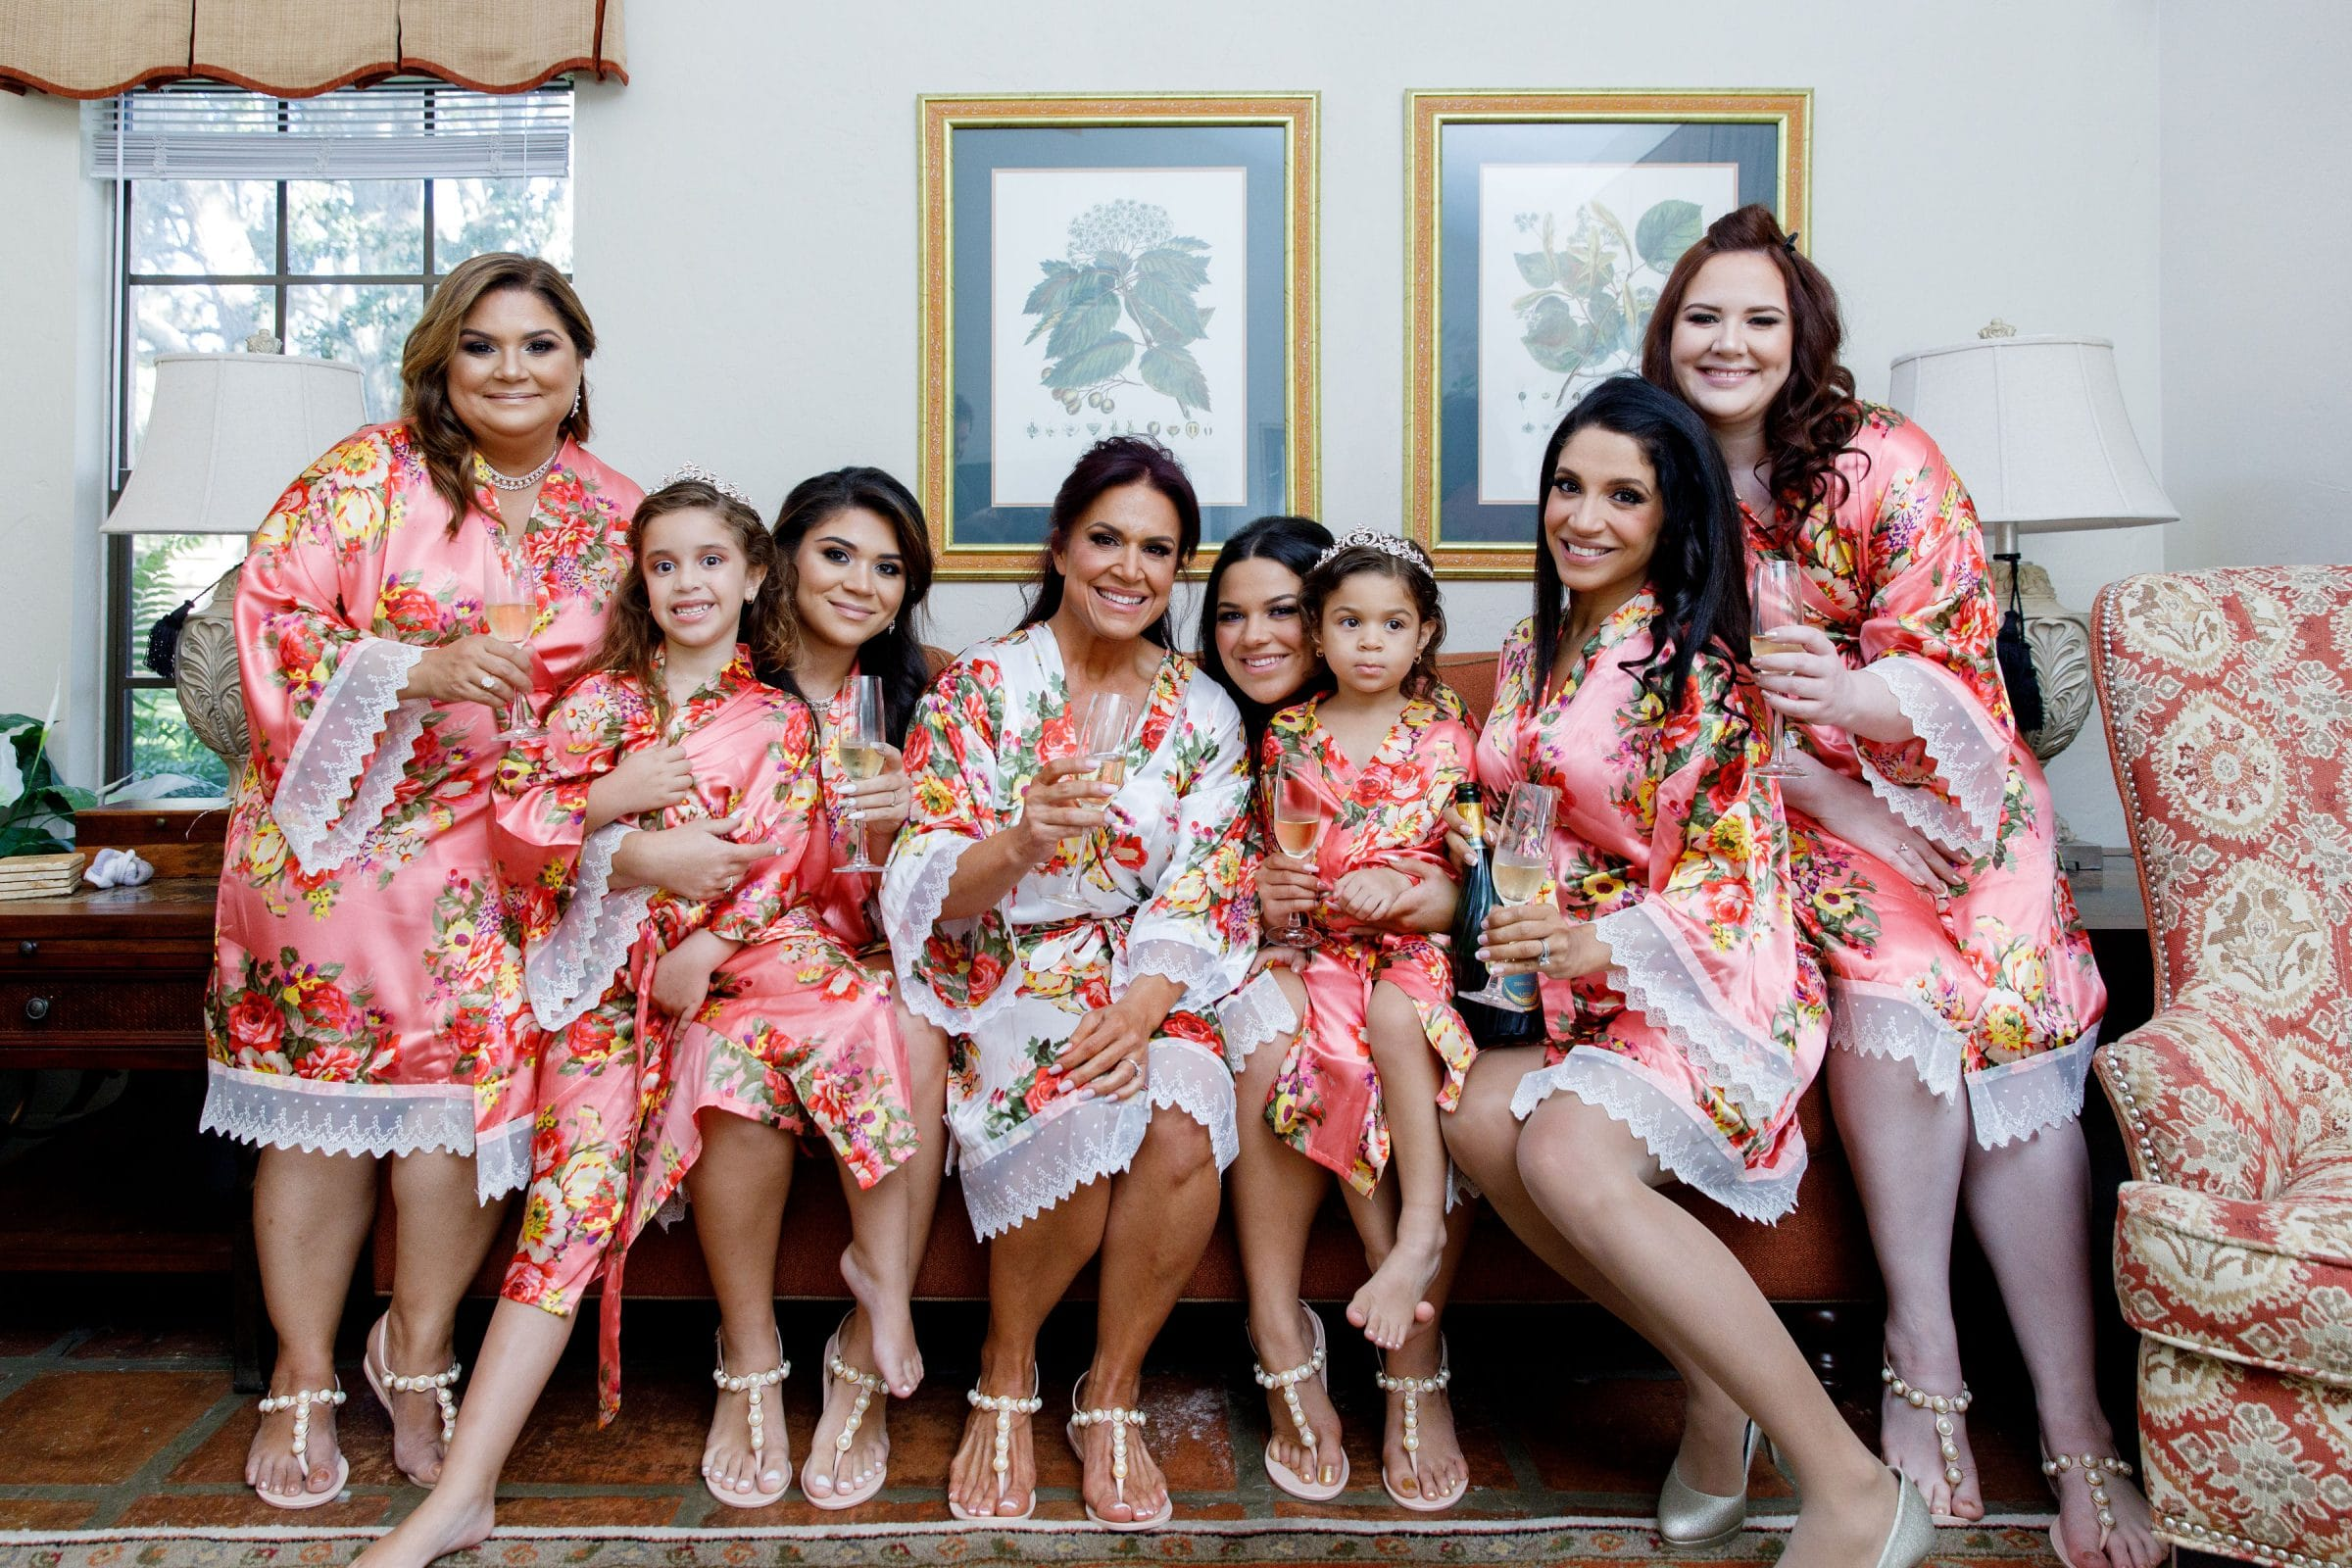 Picture of bridesmaids in pink floral robes